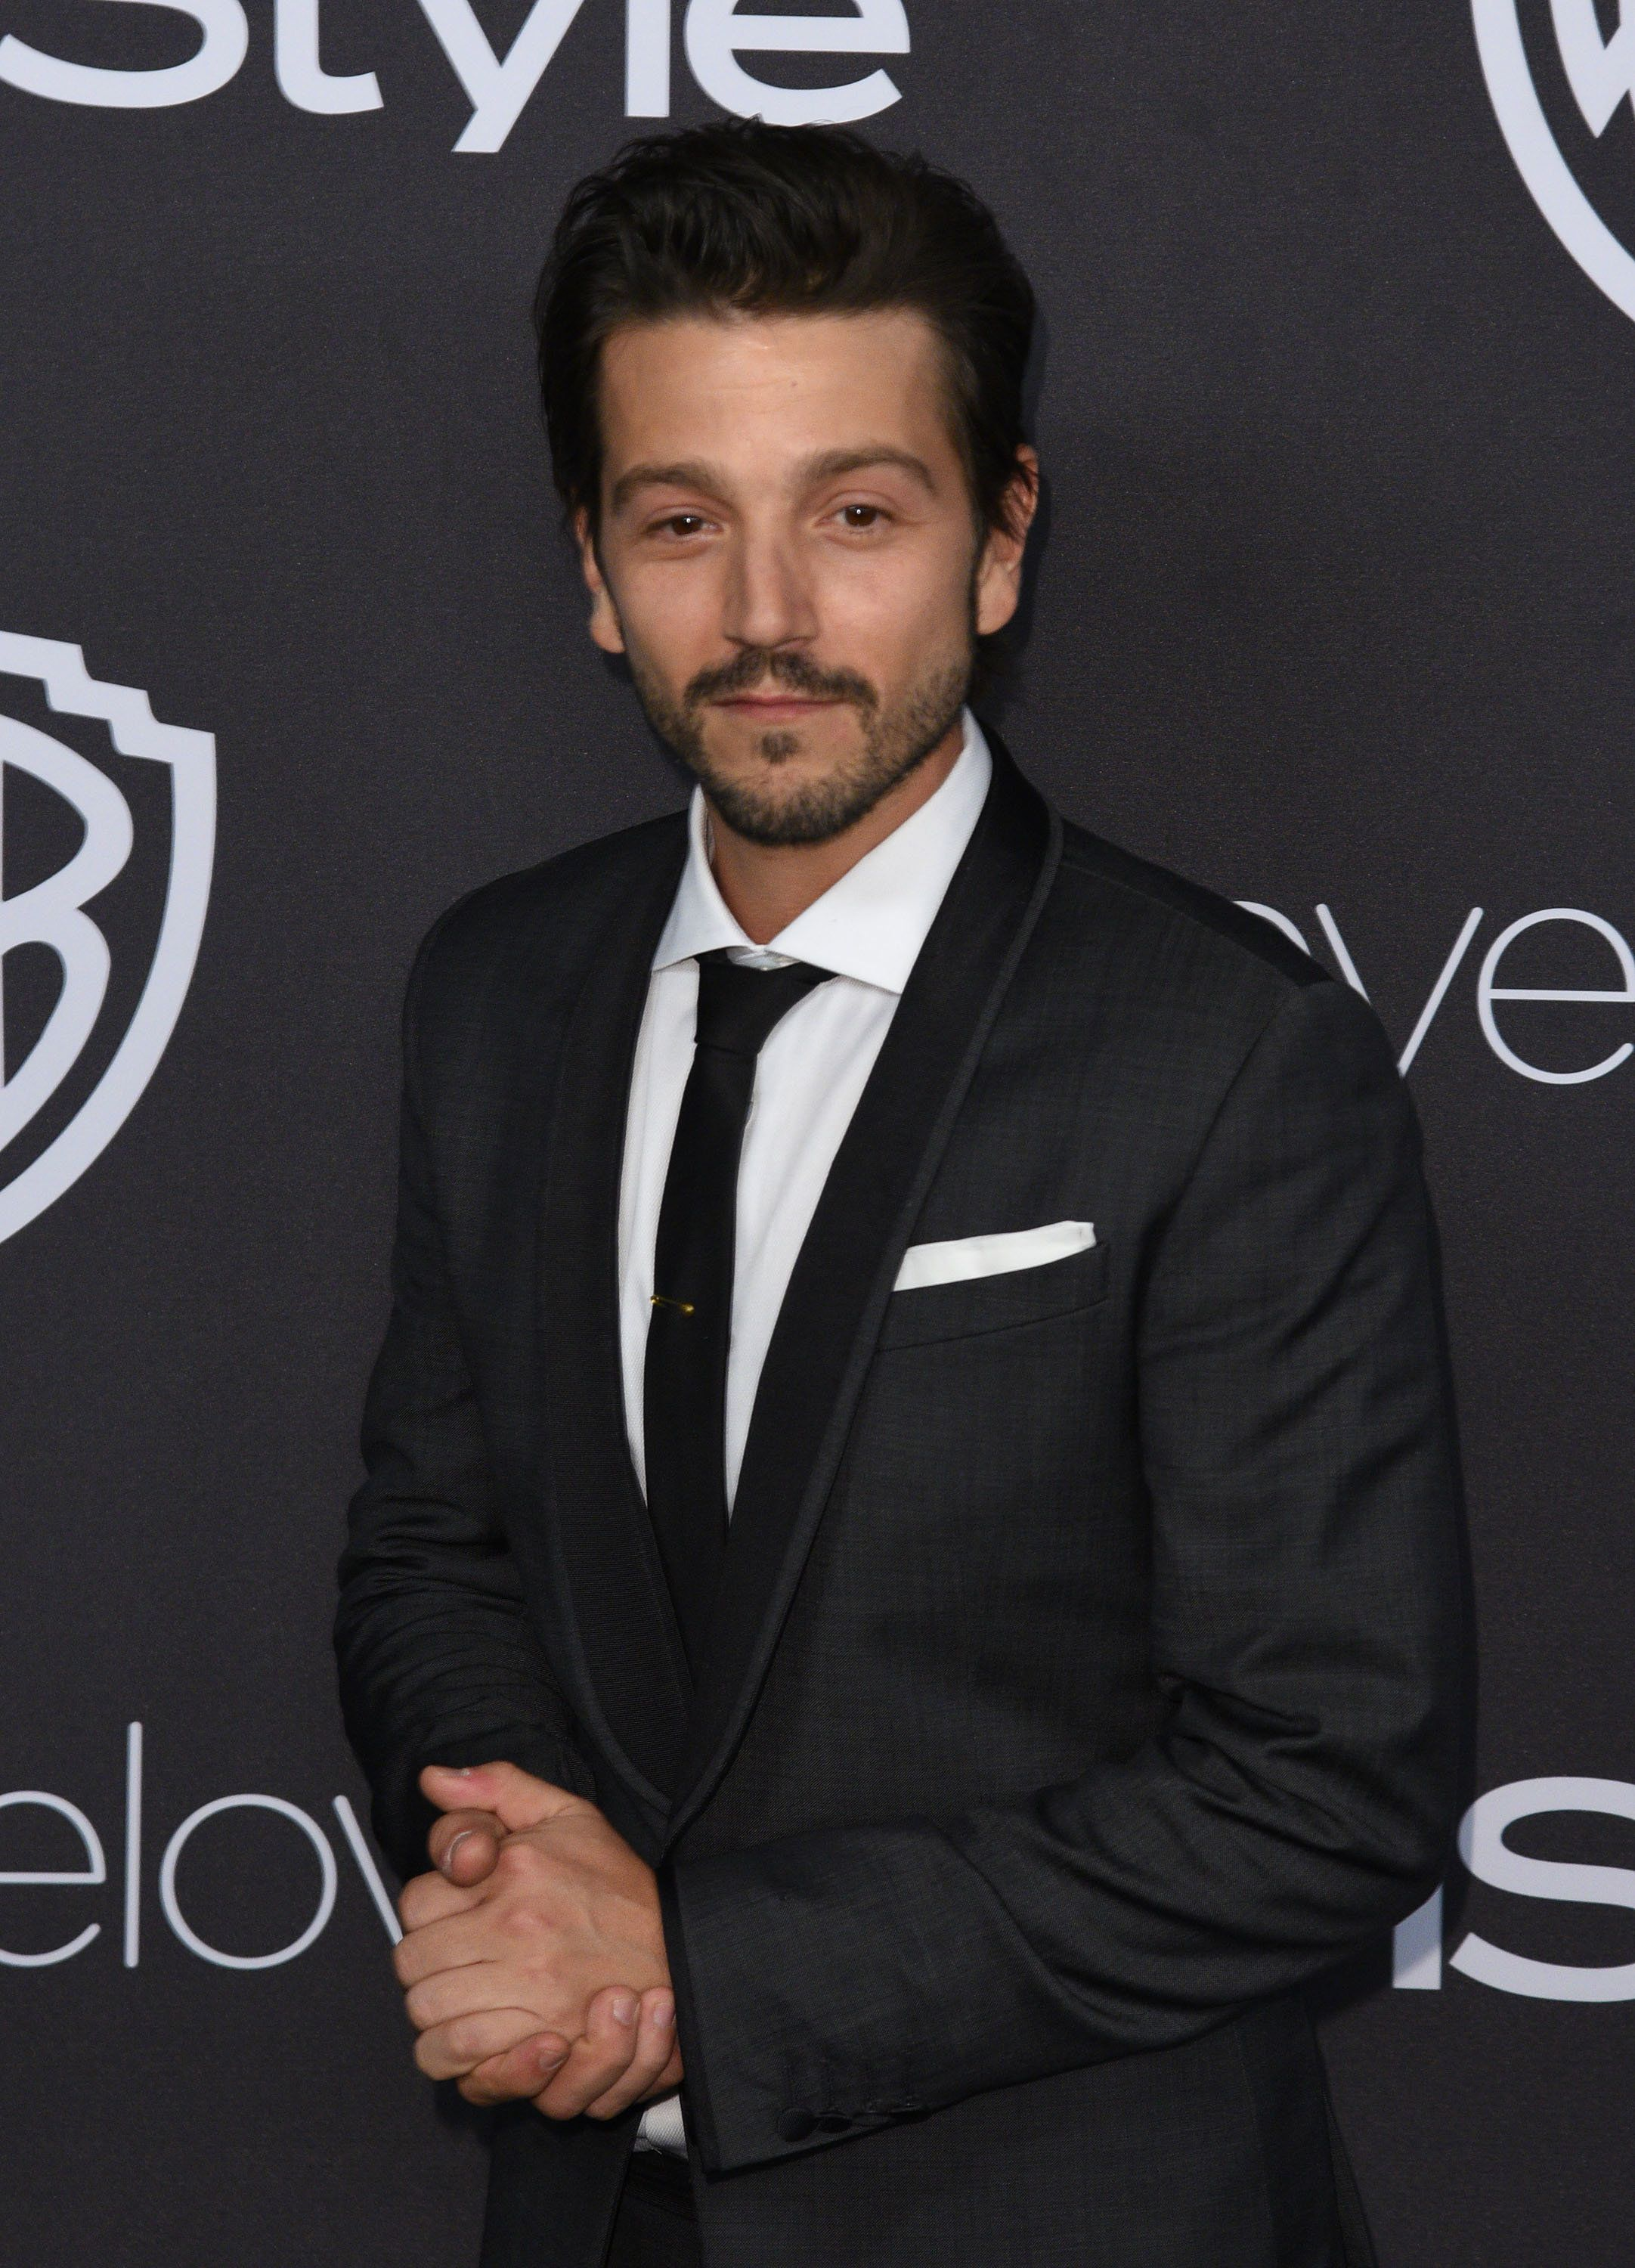 BEVERLY HILLS, CA - JANUARY 08:  Actor Diego Luna attends the 18th Annual Post-Golden Globes Party hosted by Warner Bros. Pictures and InStyle at The Beverly Hilton Hotel on January 8, 2017 in Beverly Hills, California.  (Photo by C Flanigan/Getty Images)